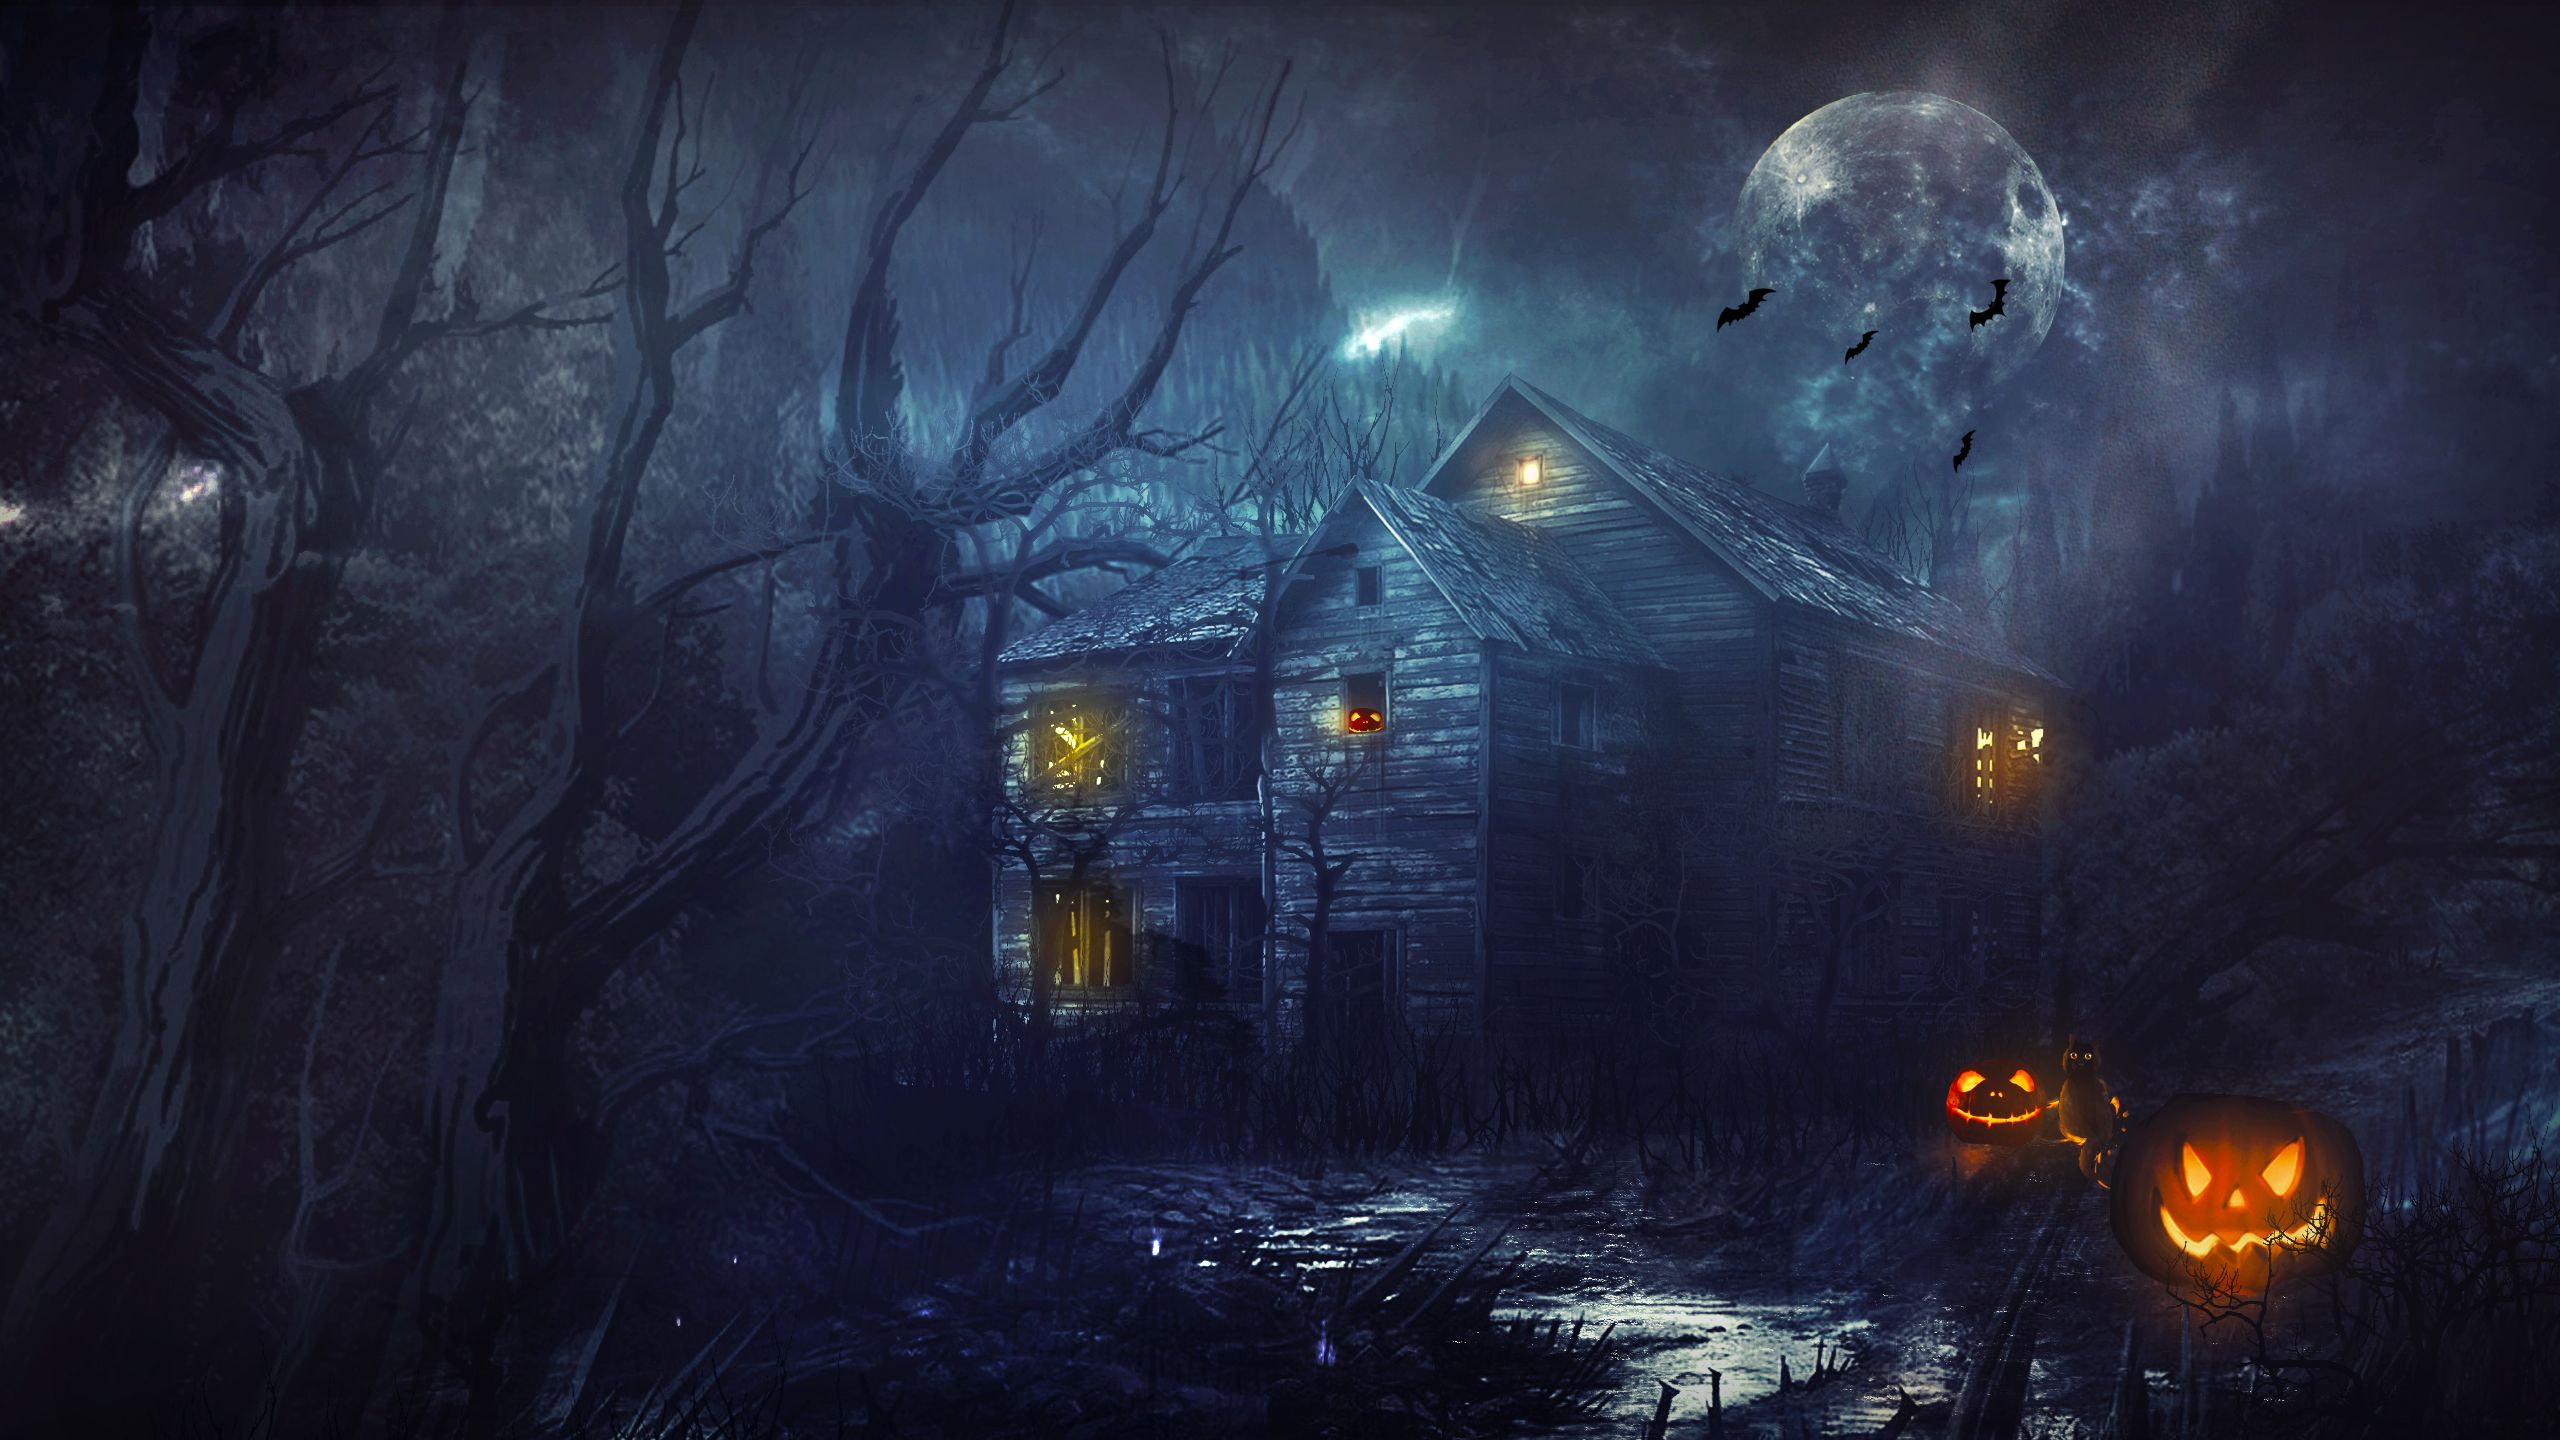 spooky background images